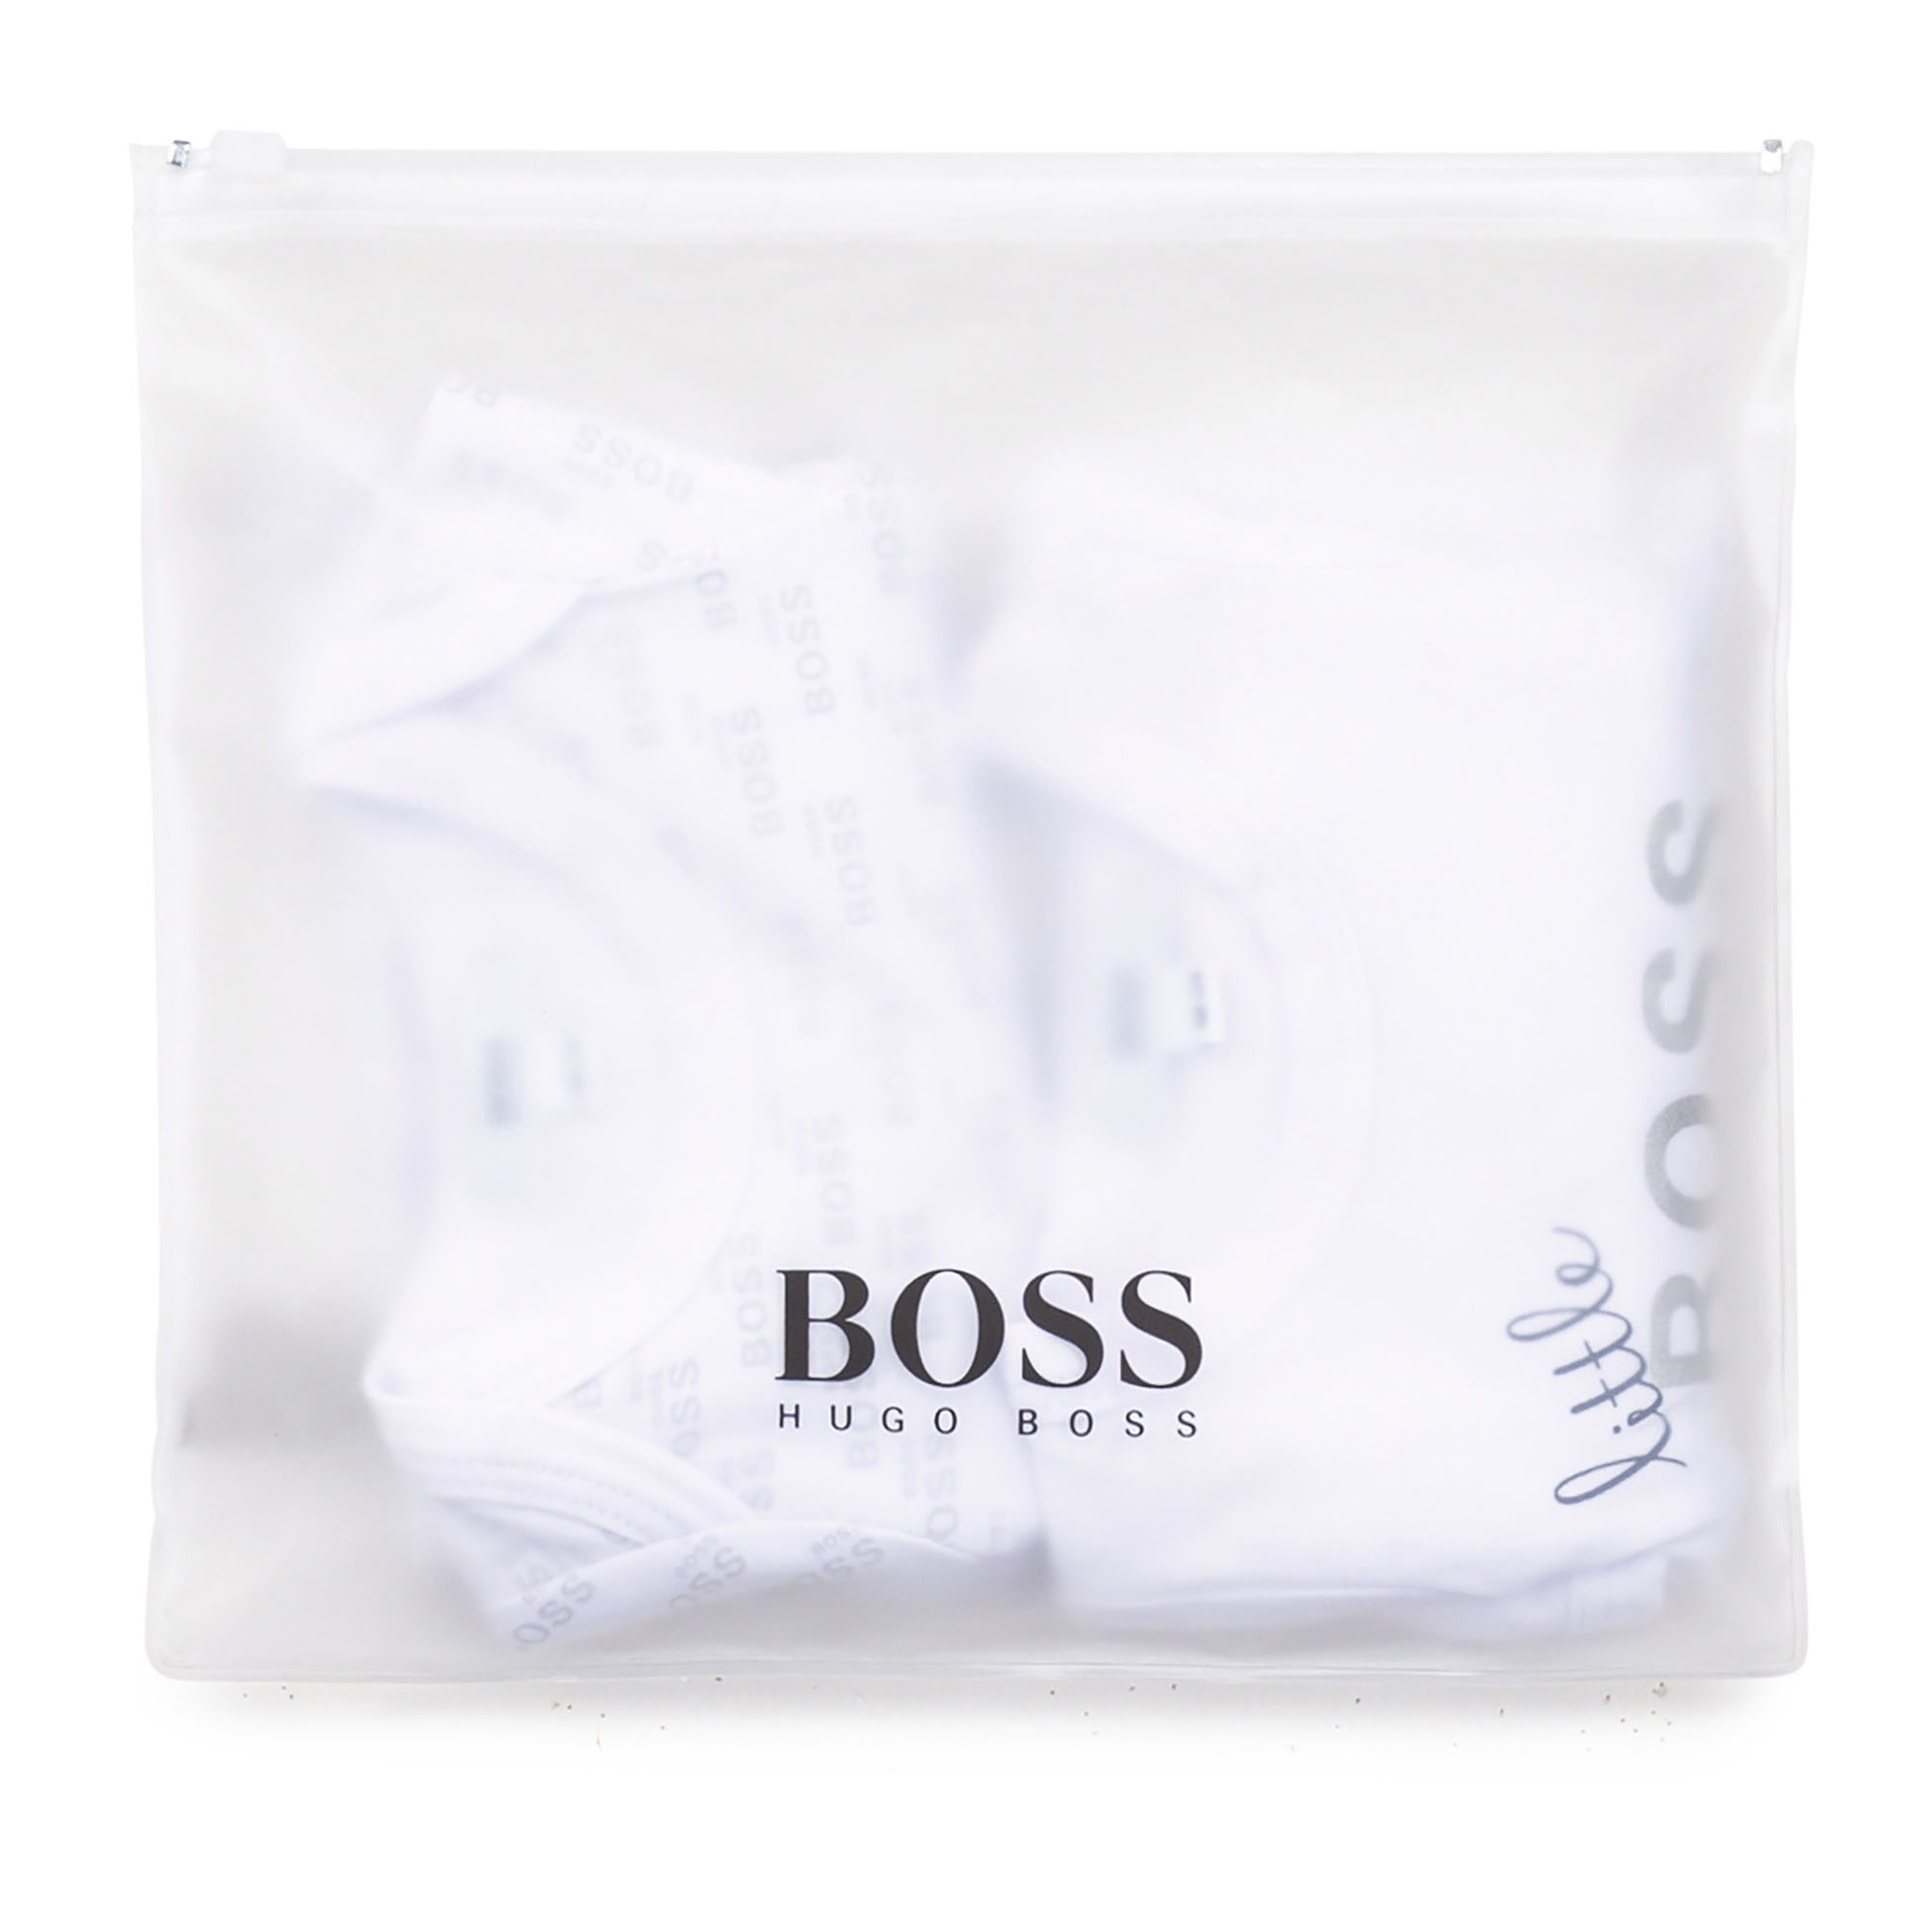 Pack of 2 cotton rompers BOSS for UNISEX